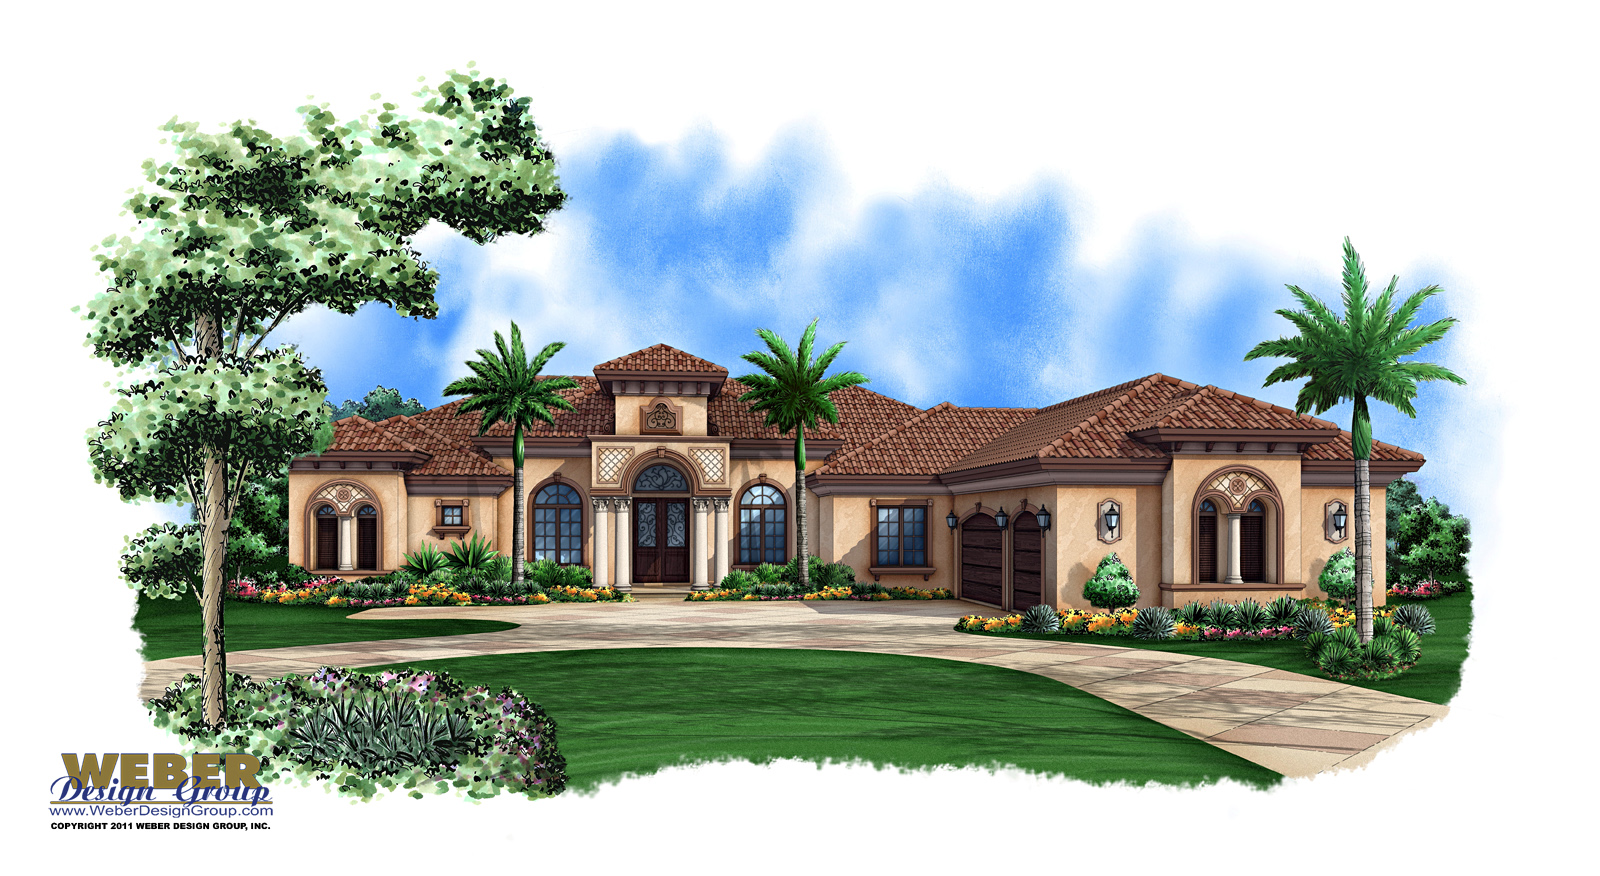 Mediterranean house design provence home plan weber for Mediterranean house plans